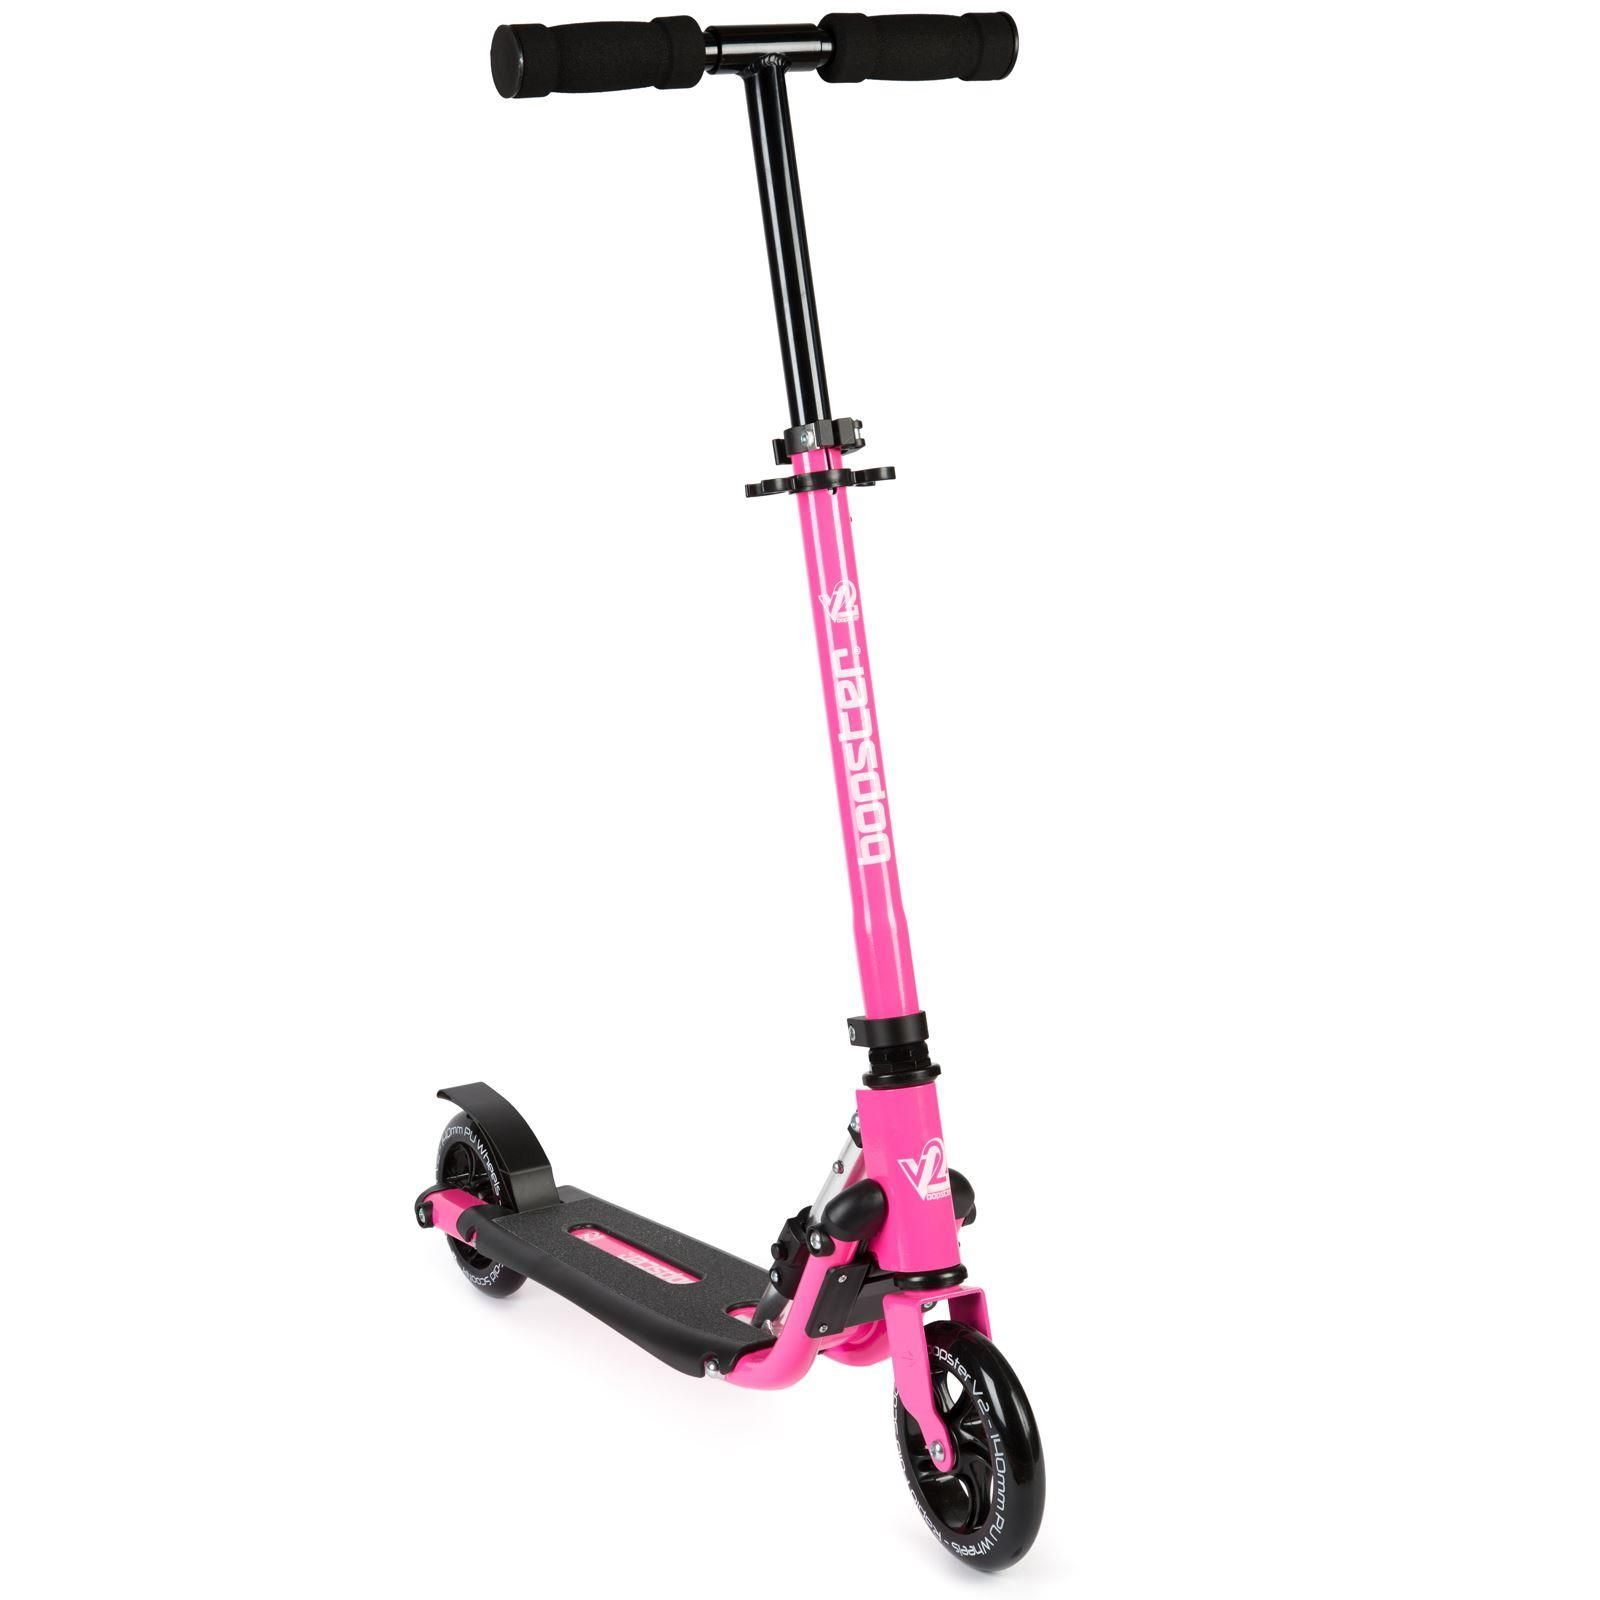 Bopster 2 Wheeled Scooter Folding V2 Pink